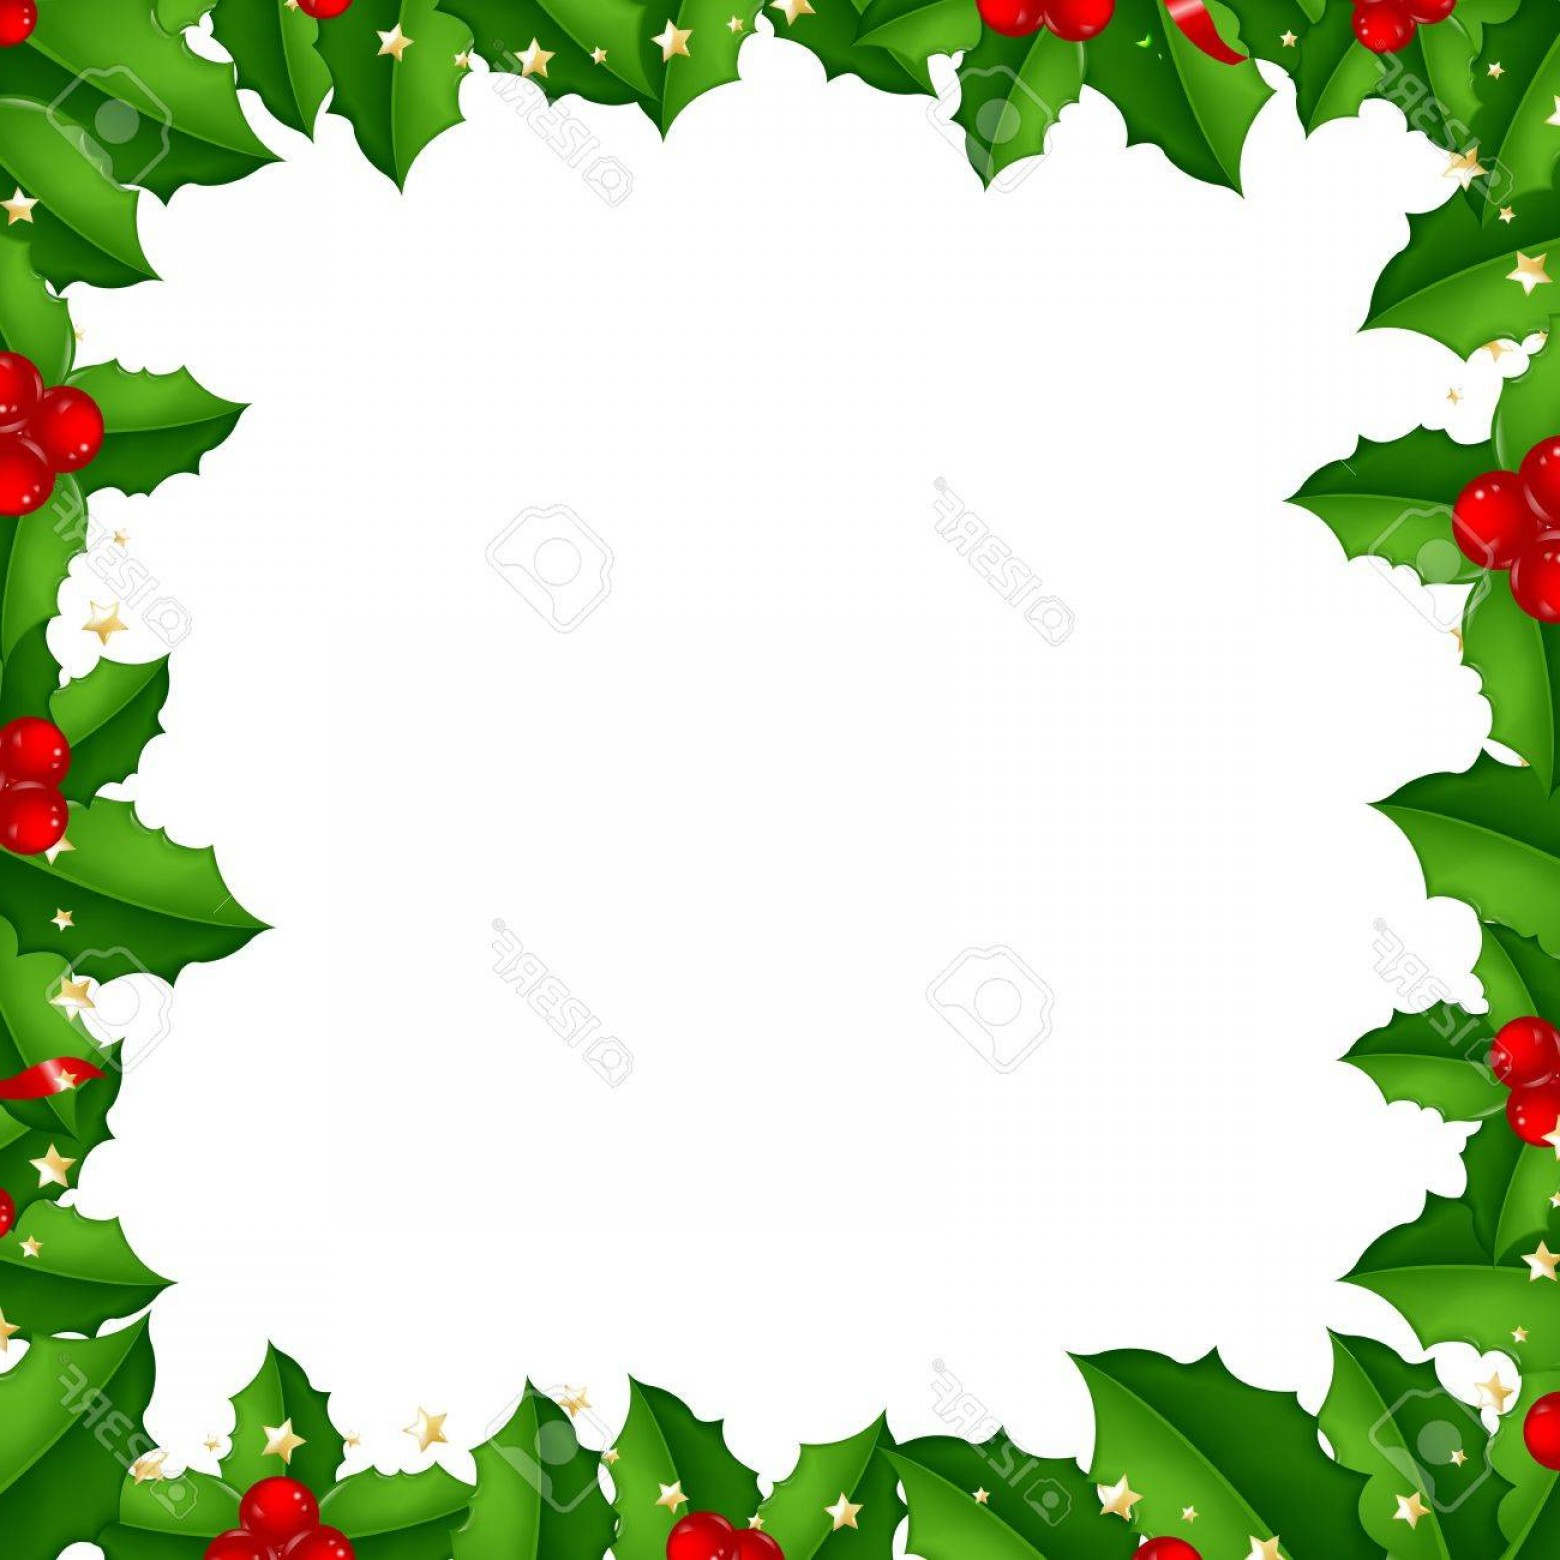 Holly Berry Vector Border: Photoborder With Holly Berry Isolated On White Background With Gradient Mesh Vector Illustration